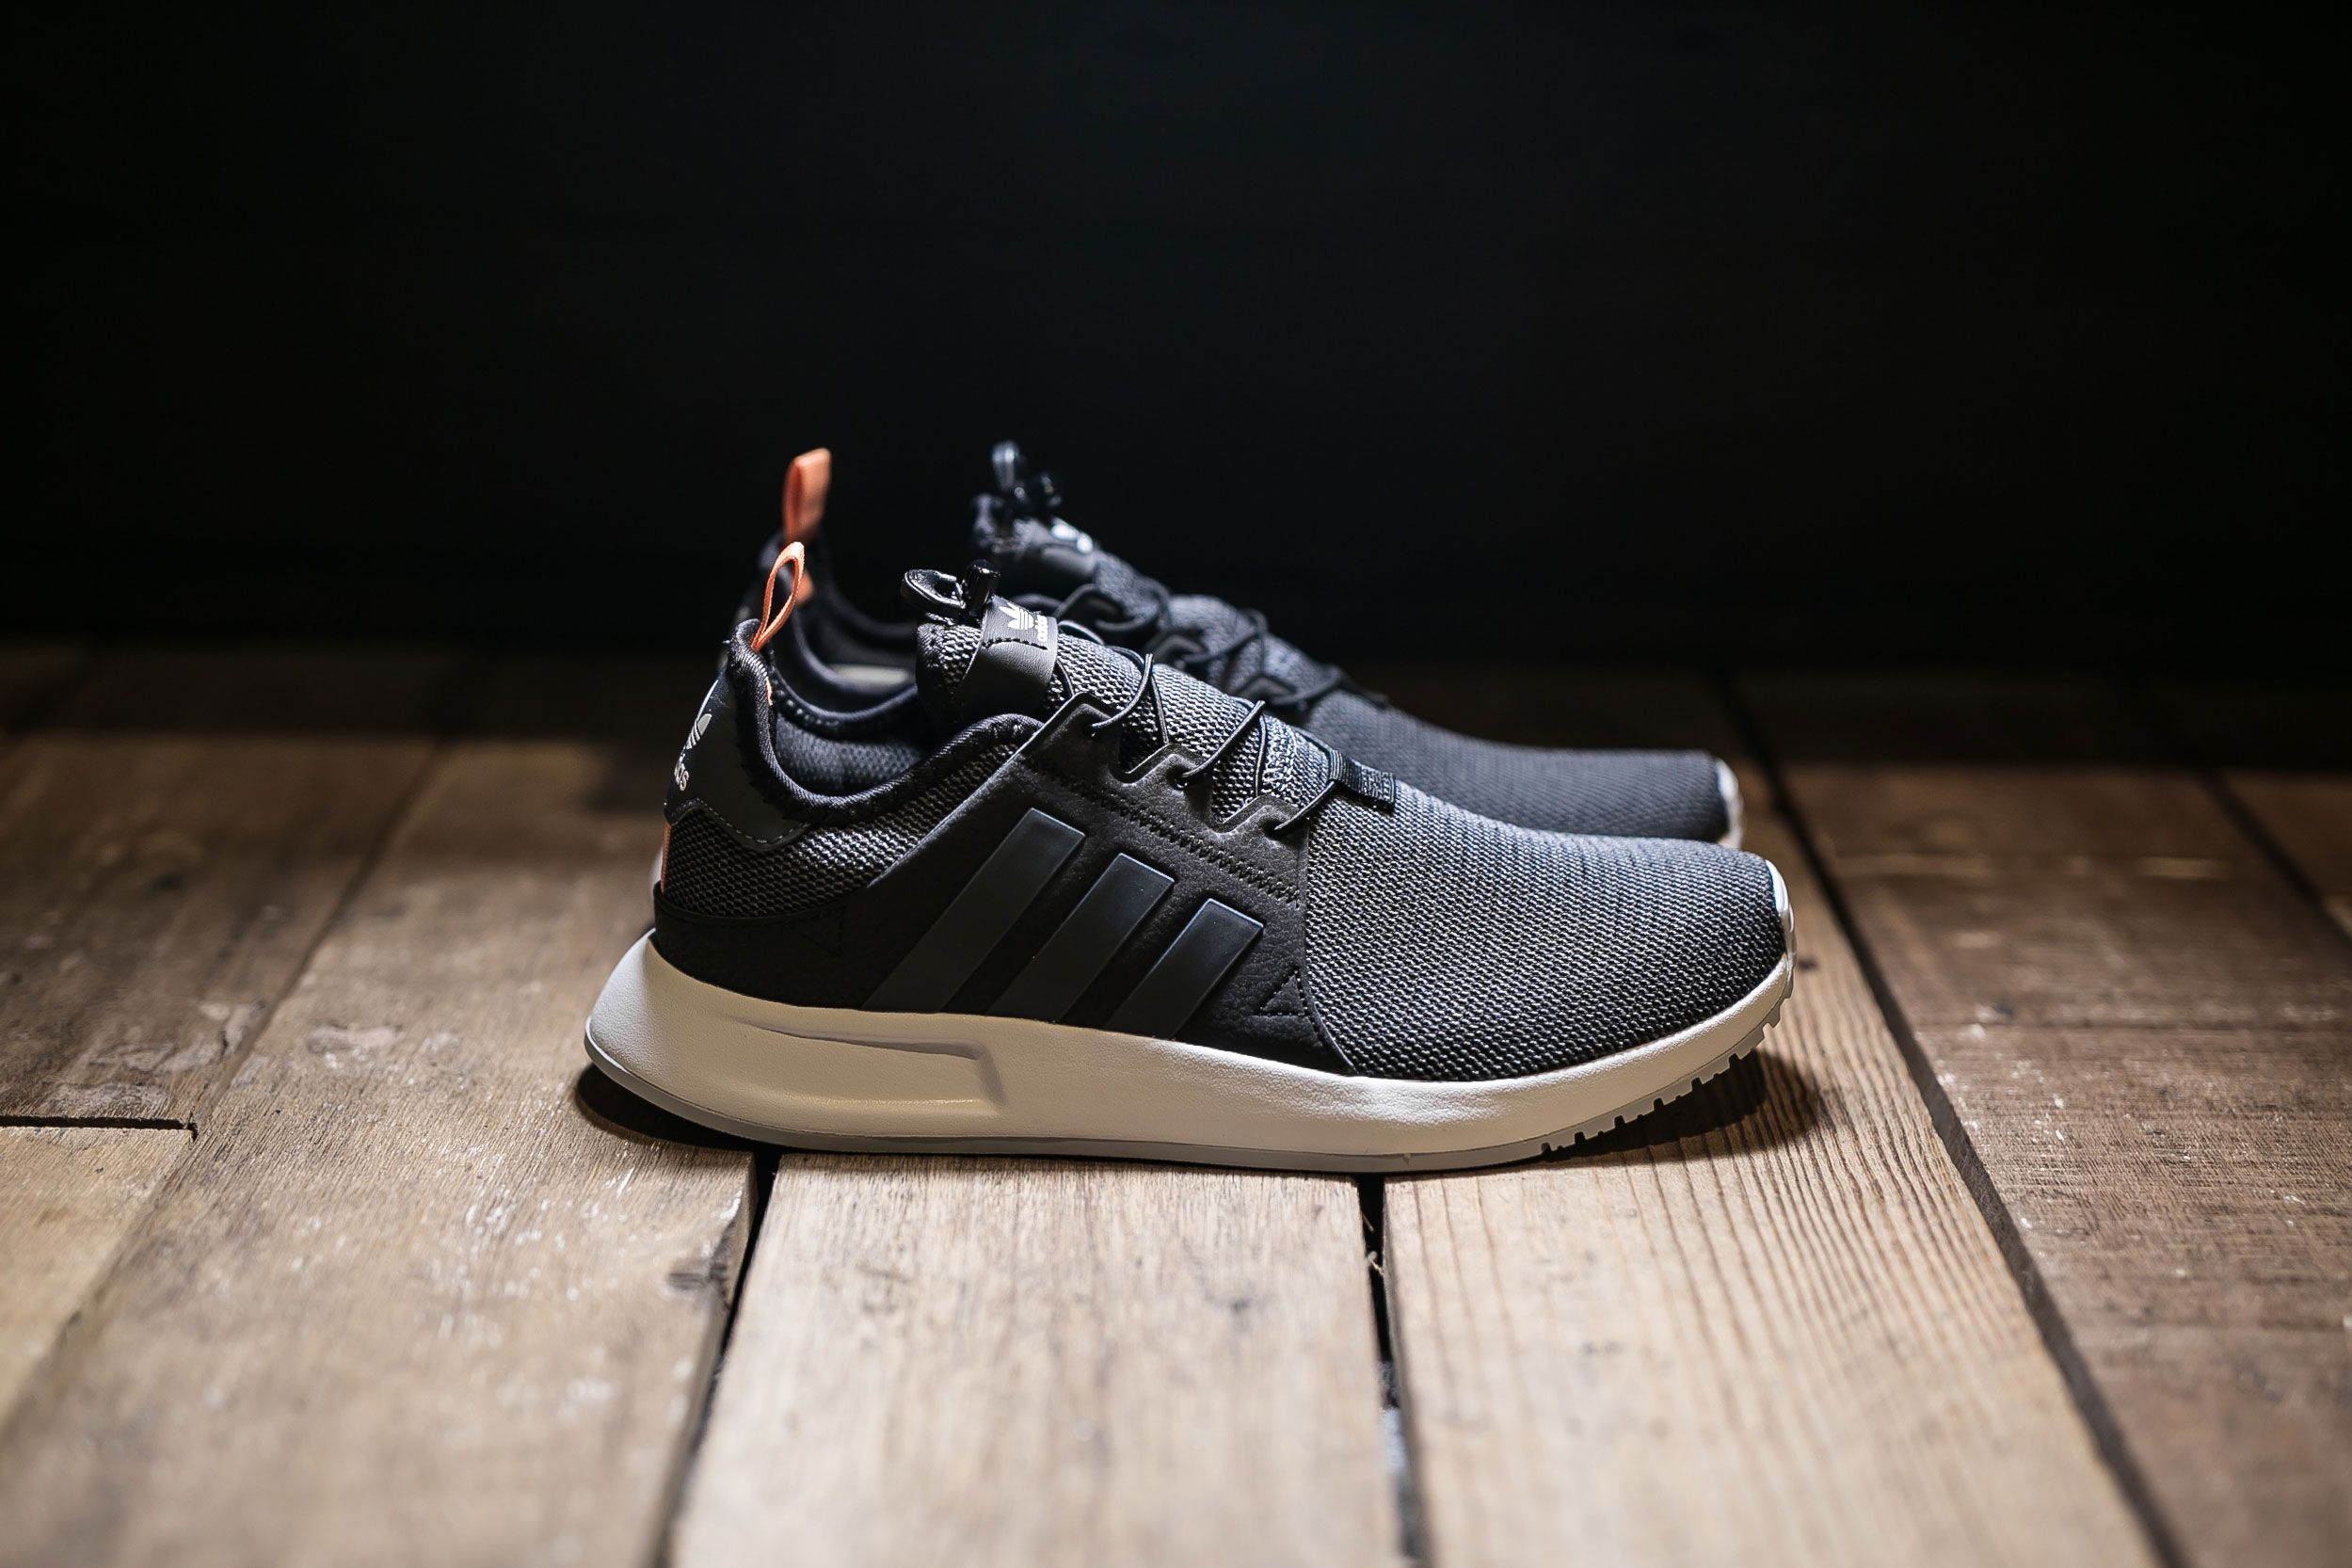 4c1cdc62 adidas Originals X_PLR, Black Boonix. Available in all #CROSSOVER stores. # adidas #adidasMY #adidasOriginals #crossoverconceptstore